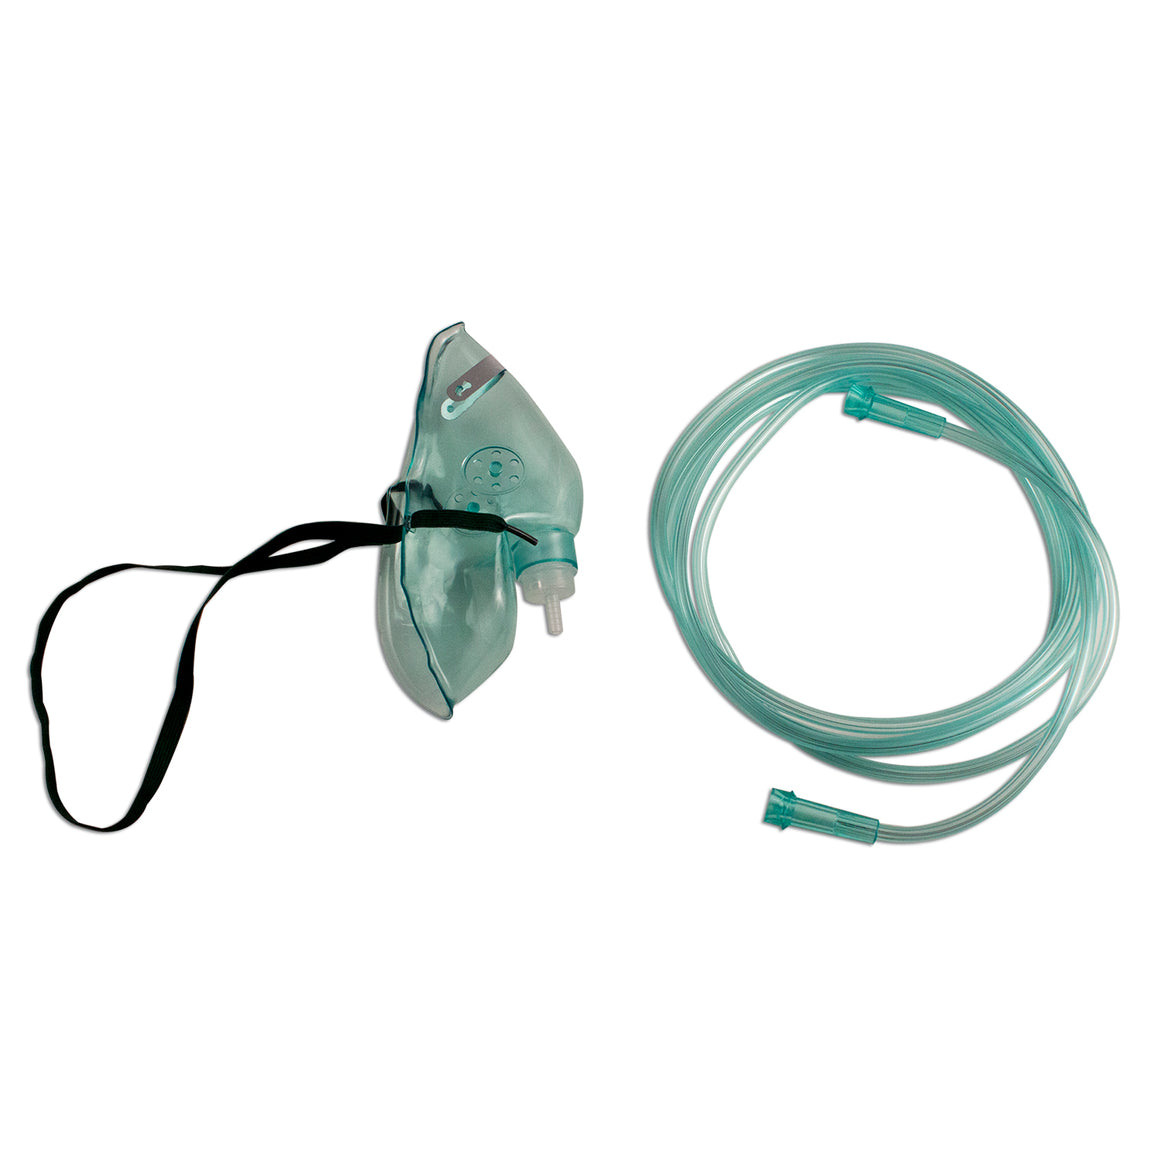 Dynarex #5302 Oxygen Mask, Elongated, 7 ft(2.1 m)